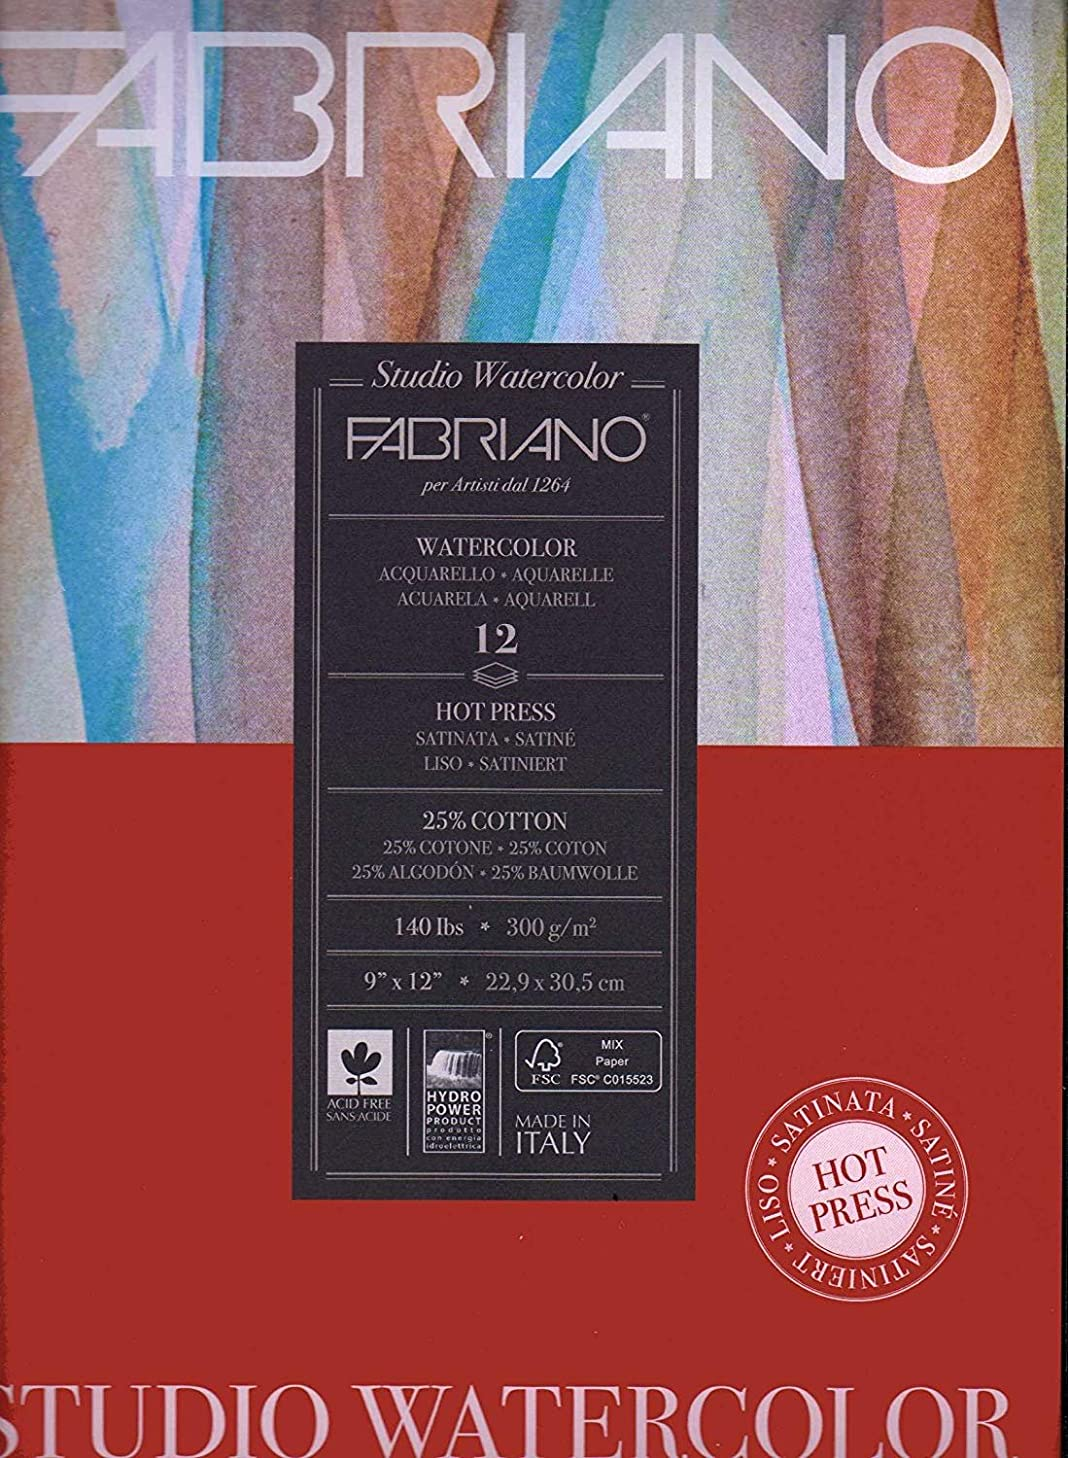 Fabriano Studio Watercolor Paper Pad 9X12 HP 300GSM 140 LB (2 Pack)